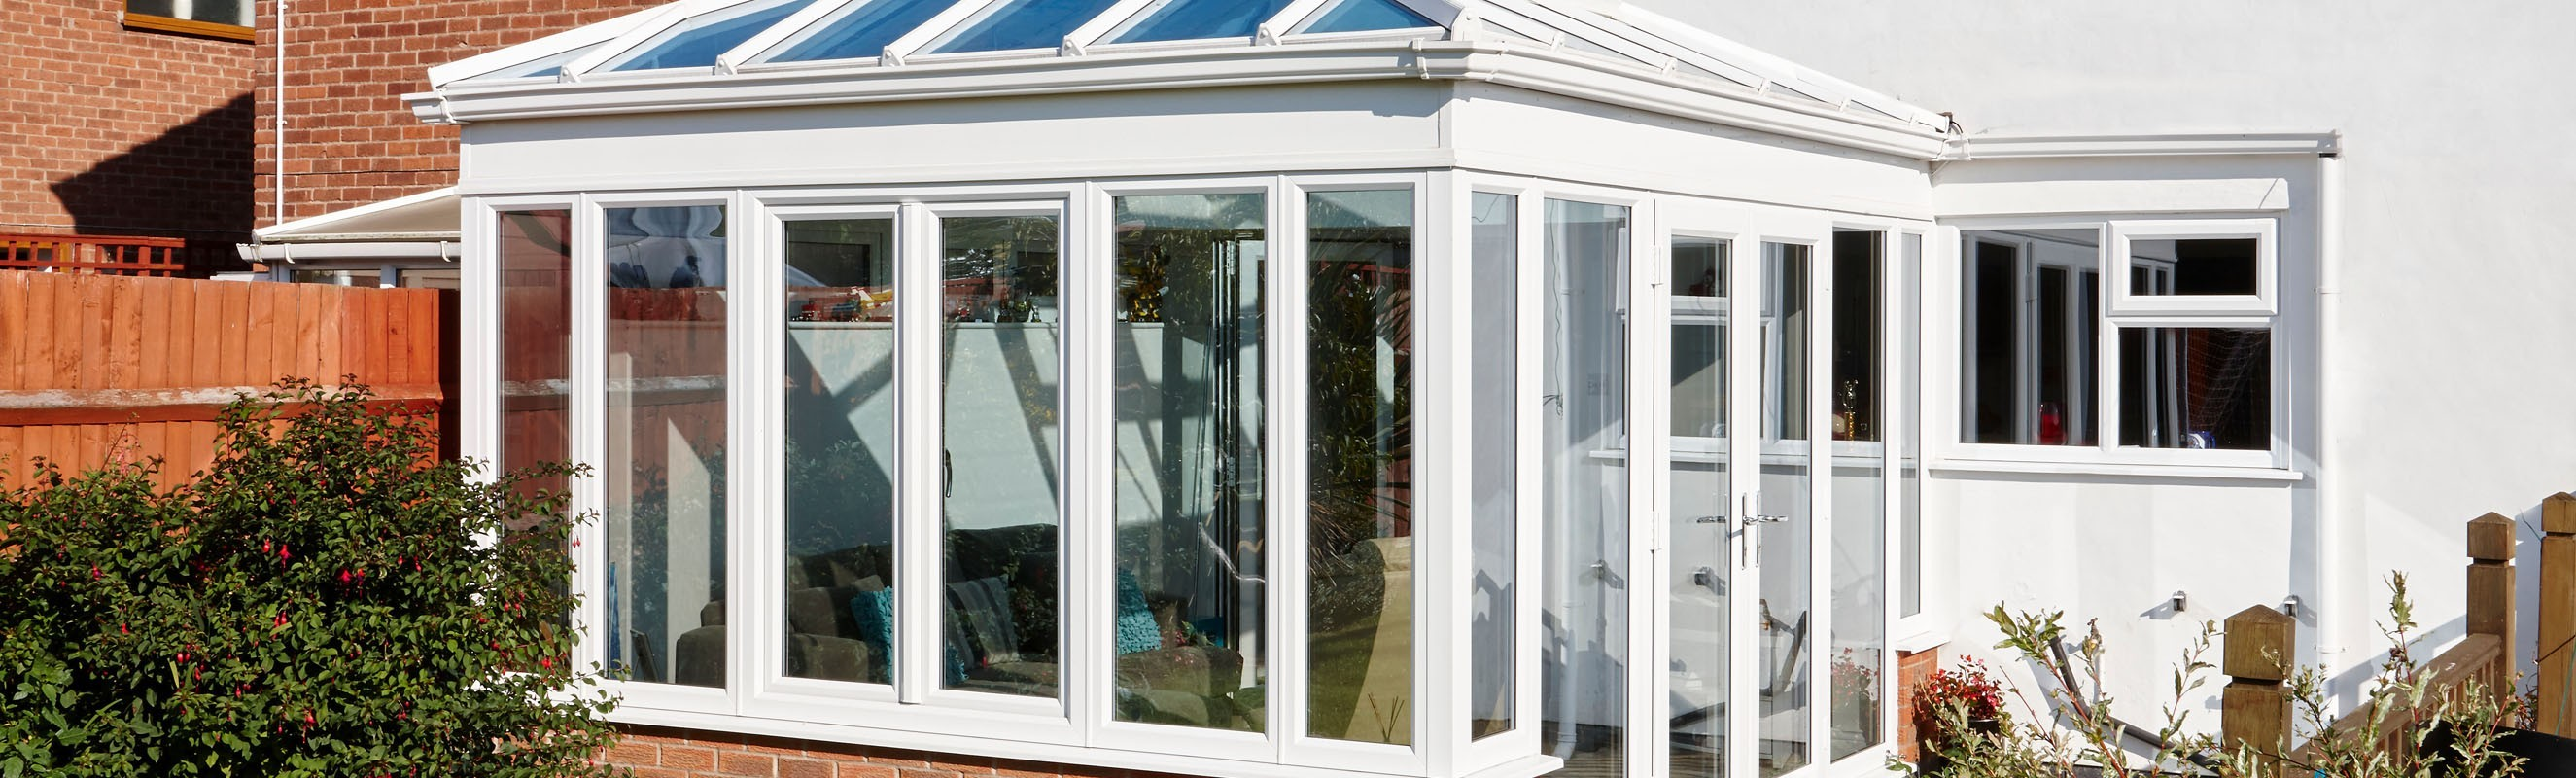 Conservatories from Vevo